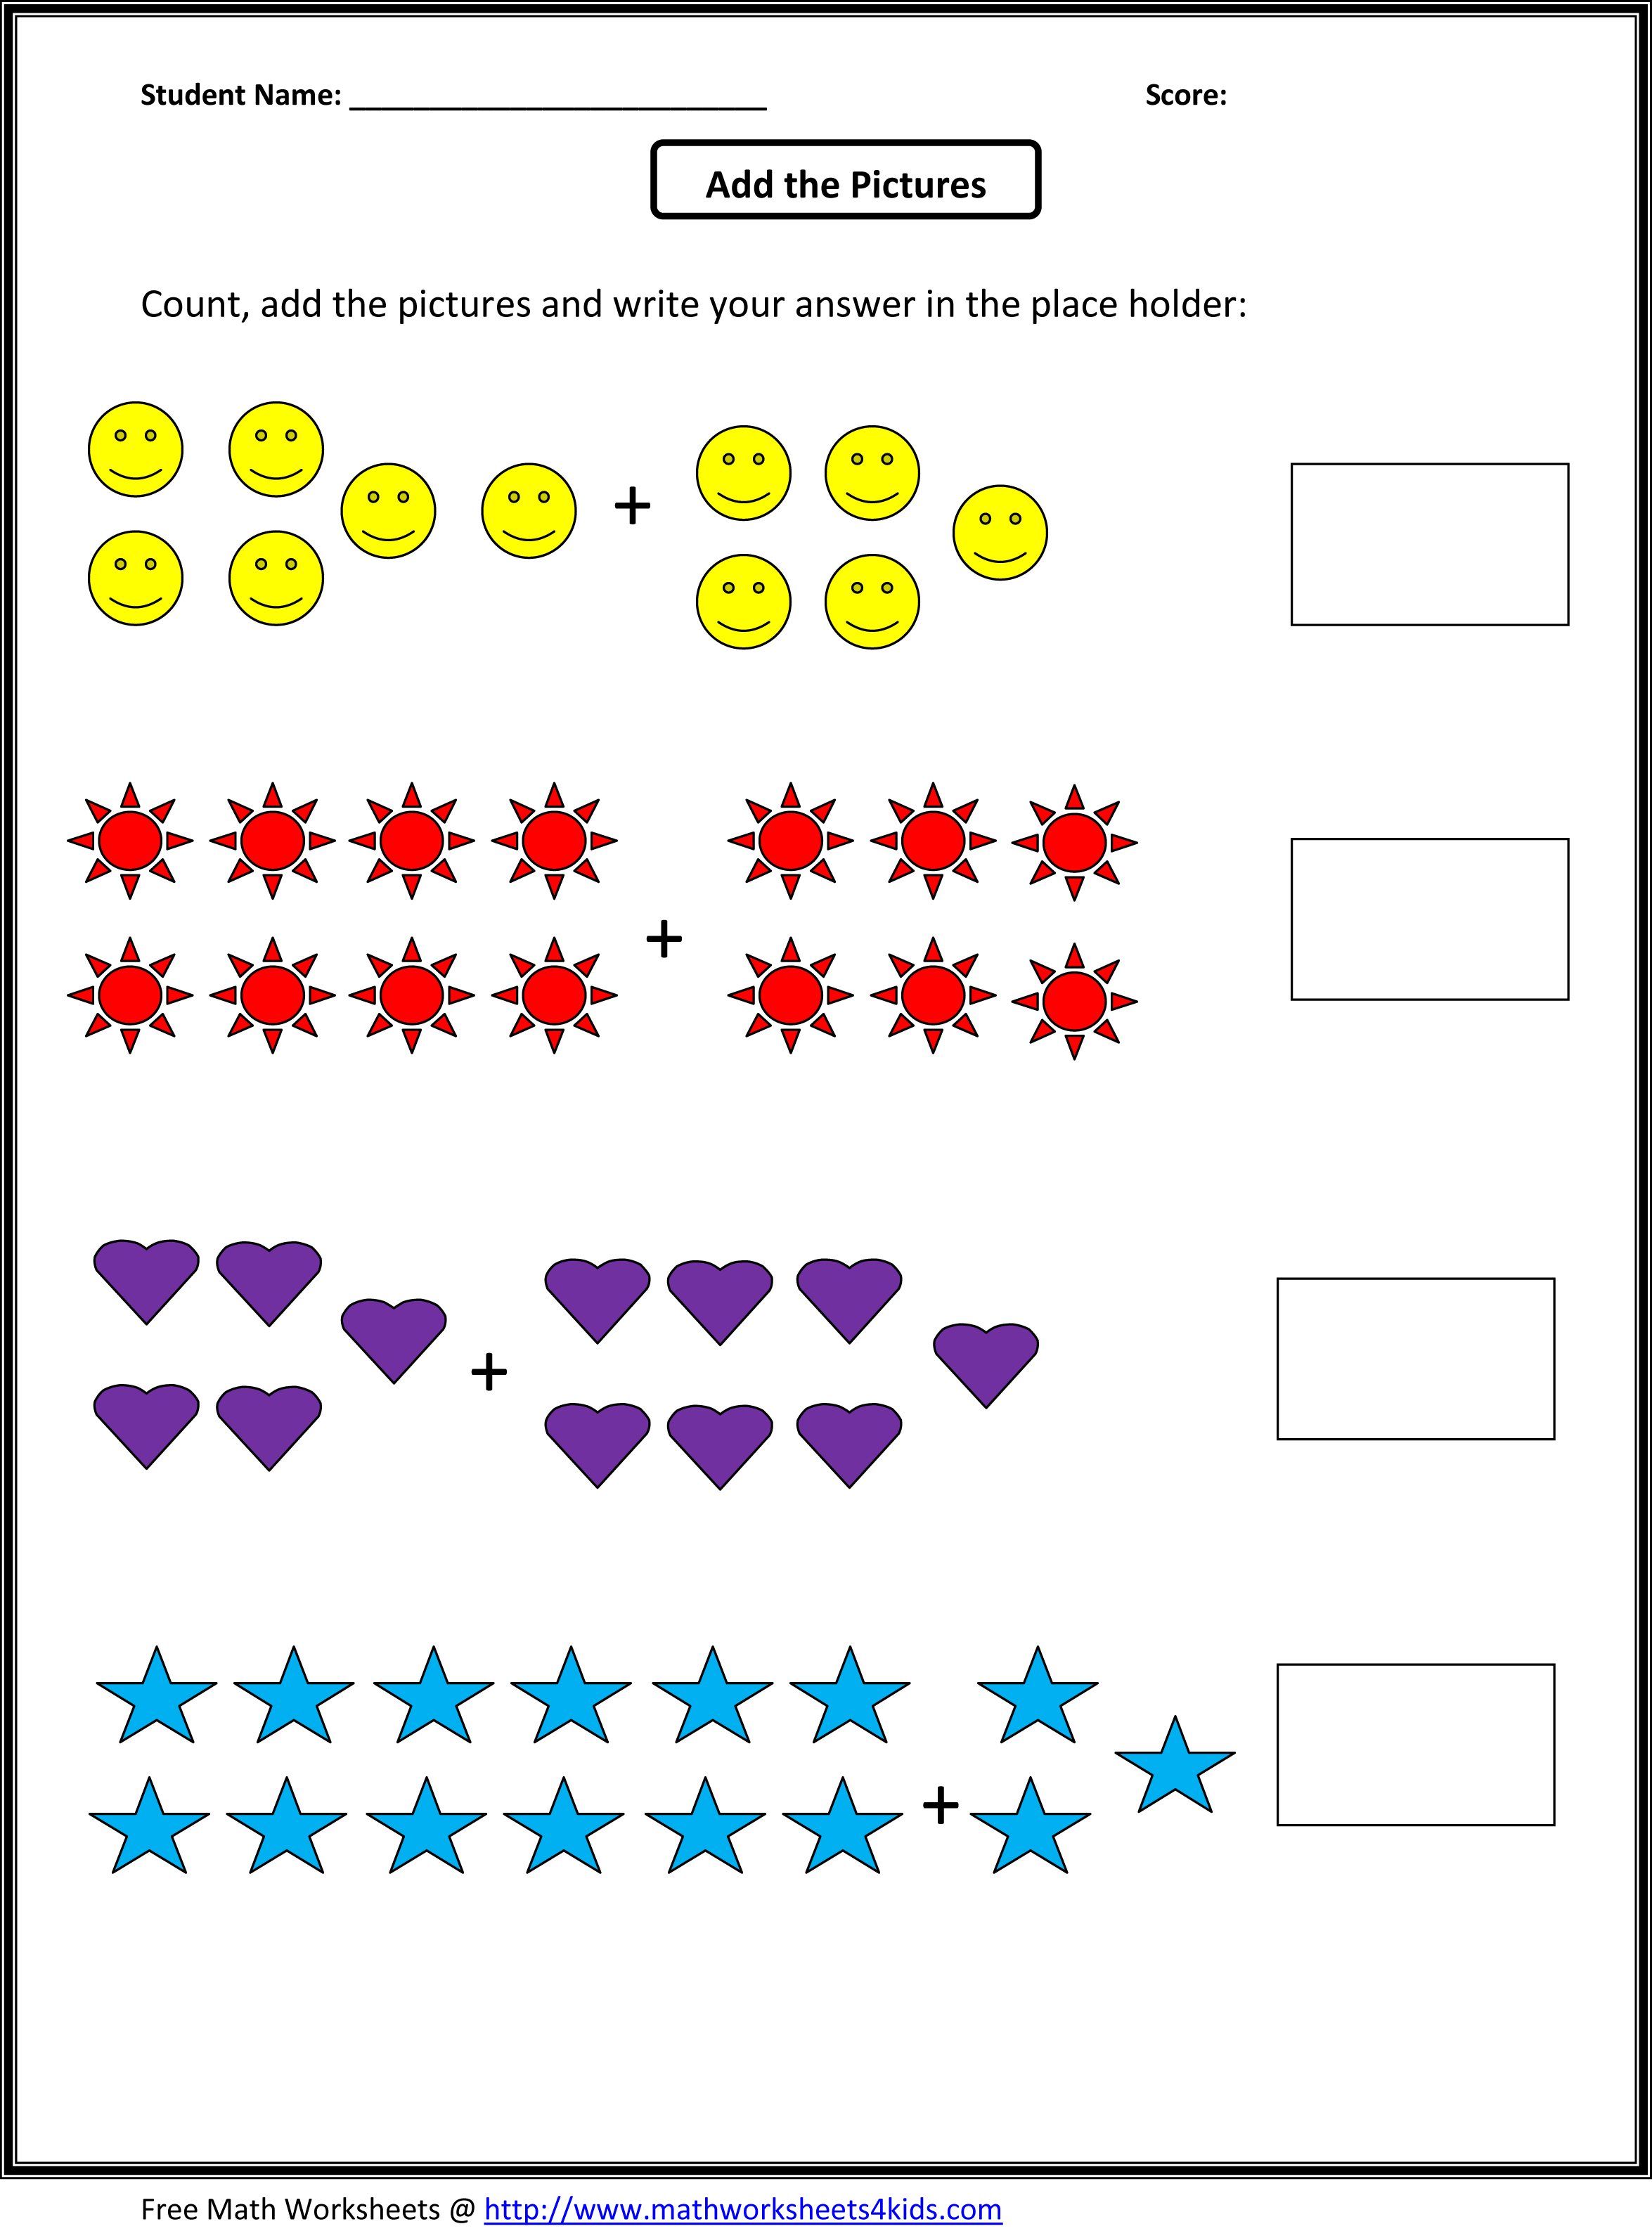 Weirdmailus  Marvelous Grade  Maths Worksheet  Reocurent With Magnificent Math Worksheets For St Grade Free  Reocurent With Amusing Math Facts Worksheets Rd Grade Also Roots Worksheet In Addition Roller Coaster Physics Worksheet And Pythagorean Theorem Printable Worksheets As Well As Vector Worksheets Additionally Greek Root Words Worksheets From Reocurentcom With Weirdmailus  Magnificent Grade  Maths Worksheet  Reocurent With Amusing Math Worksheets For St Grade Free  Reocurent And Marvelous Math Facts Worksheets Rd Grade Also Roots Worksheet In Addition Roller Coaster Physics Worksheet From Reocurentcom